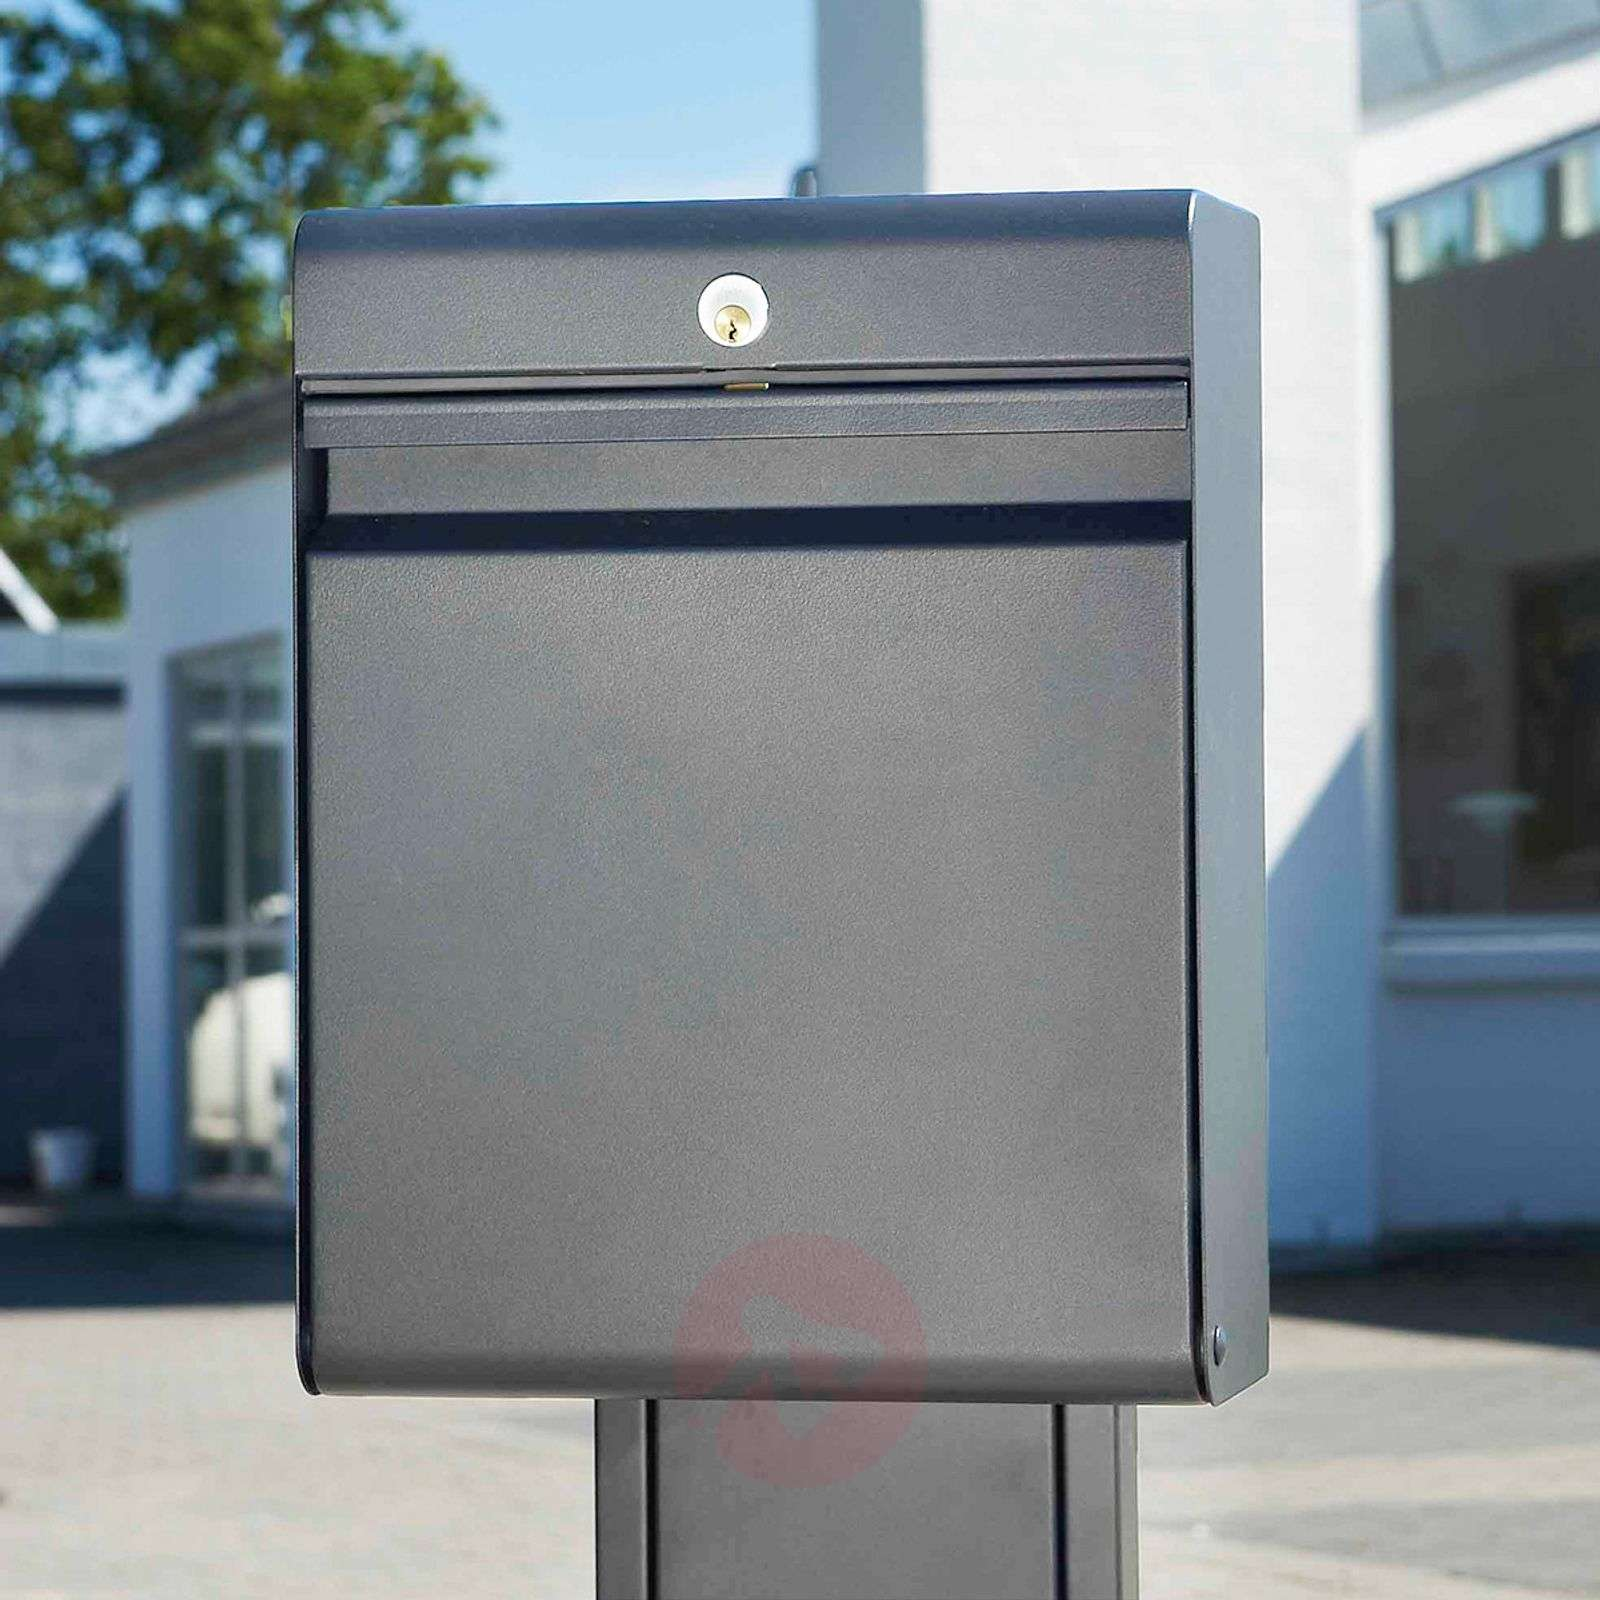 Letter box Holscher with a classic design-1045222-01